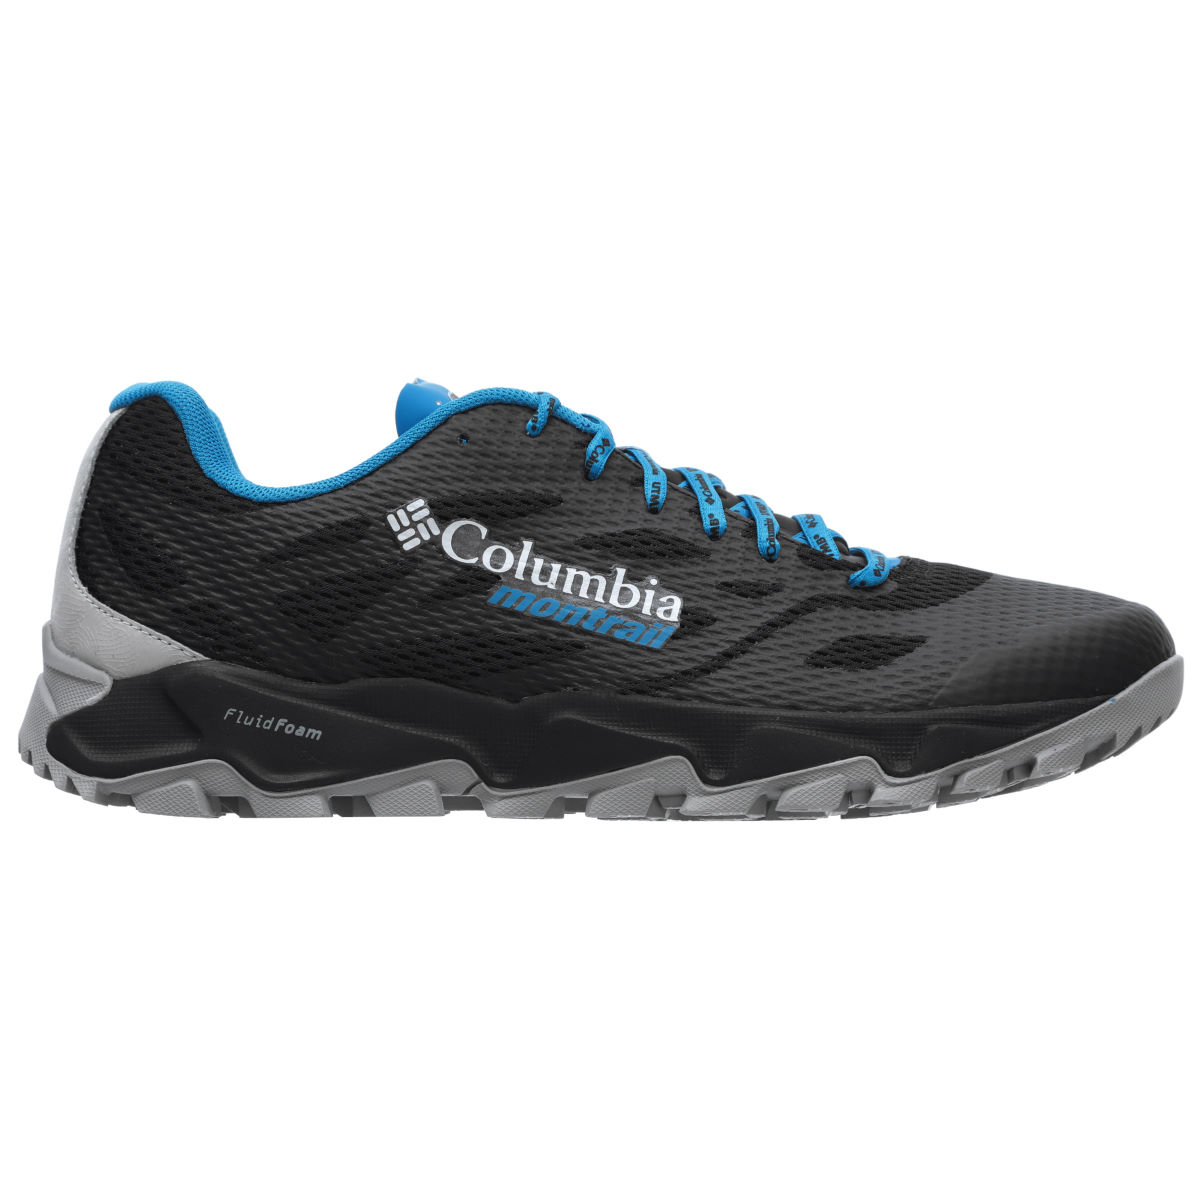 Columbia Columbia Trans Alps™ F.K.T™ II Shoes - exclusive colour   Trail Shoes